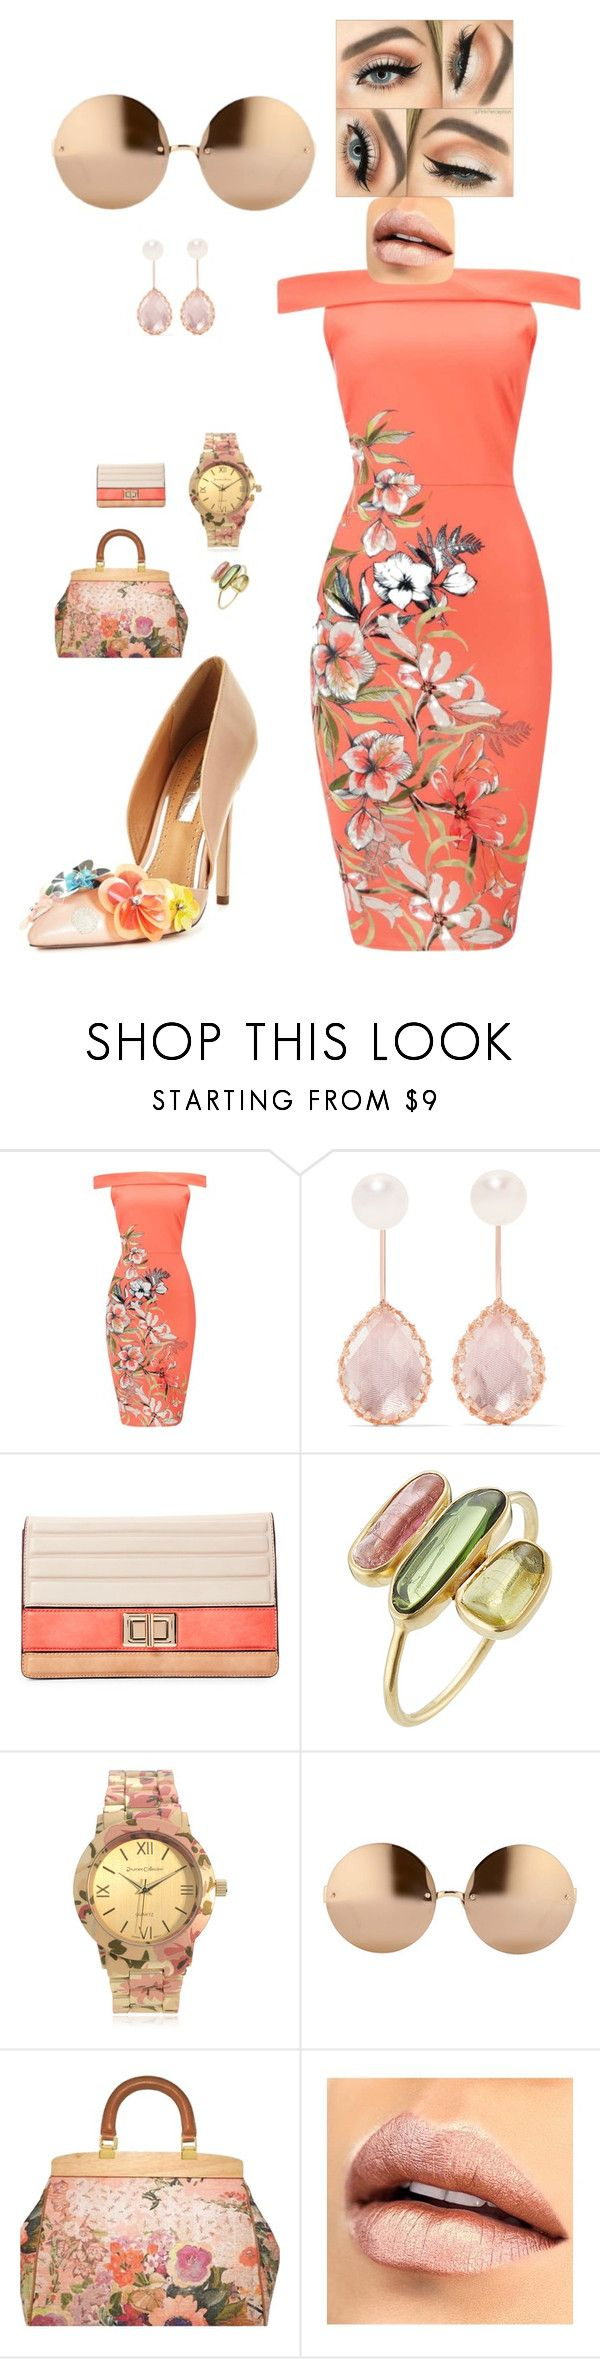 """""""Floral look"""" by crystaltrends on Polyvore featuring Larkspur & Hawk, Melie Bianco, Pippa Small, Journee Collection, Linda Farrow, Tory Burch and Miss KG"""